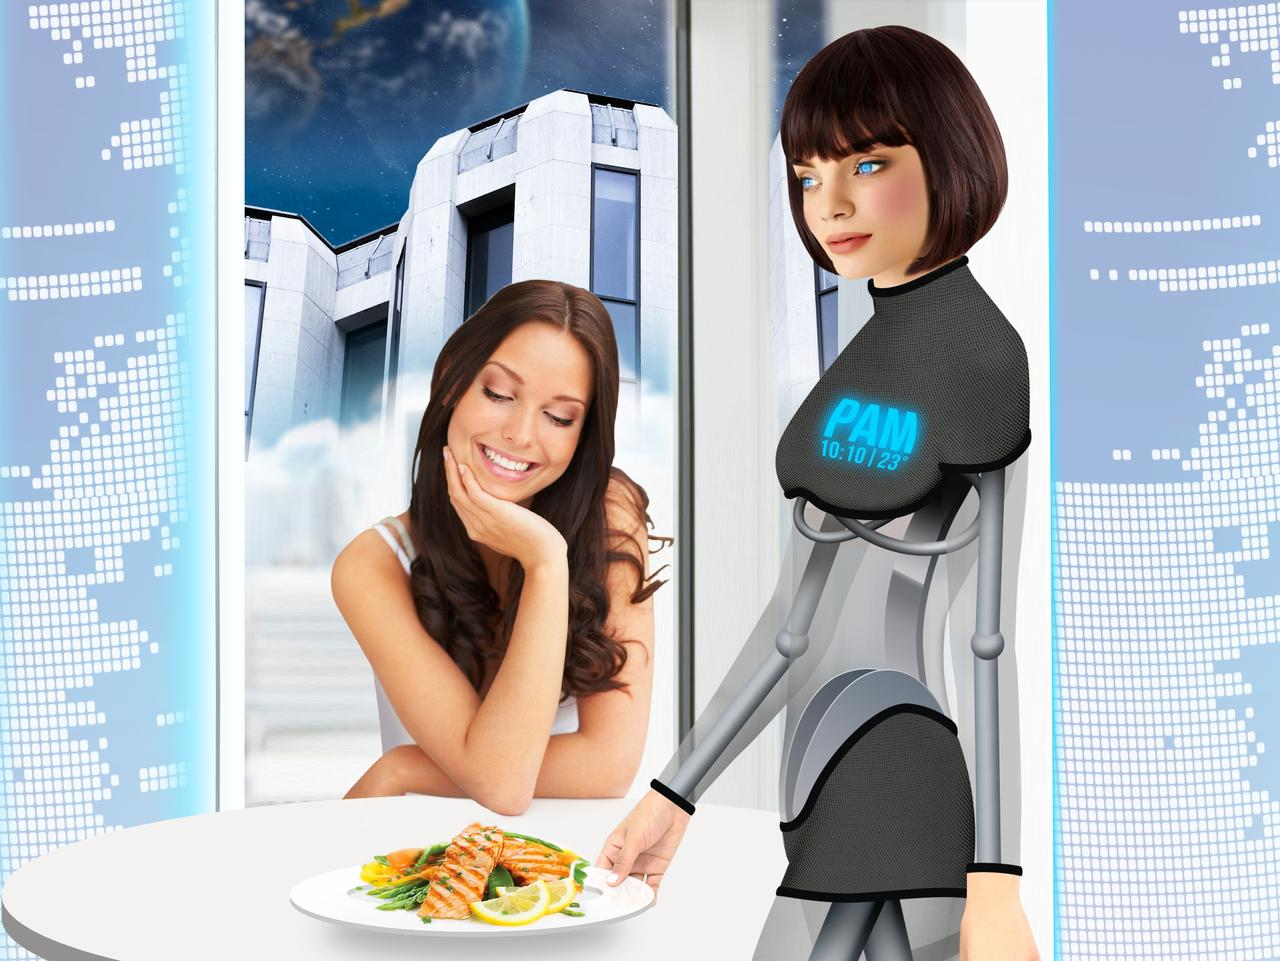 ESCAPE: Future of hotels 2060 story - Robot butler. Picture: Supplied